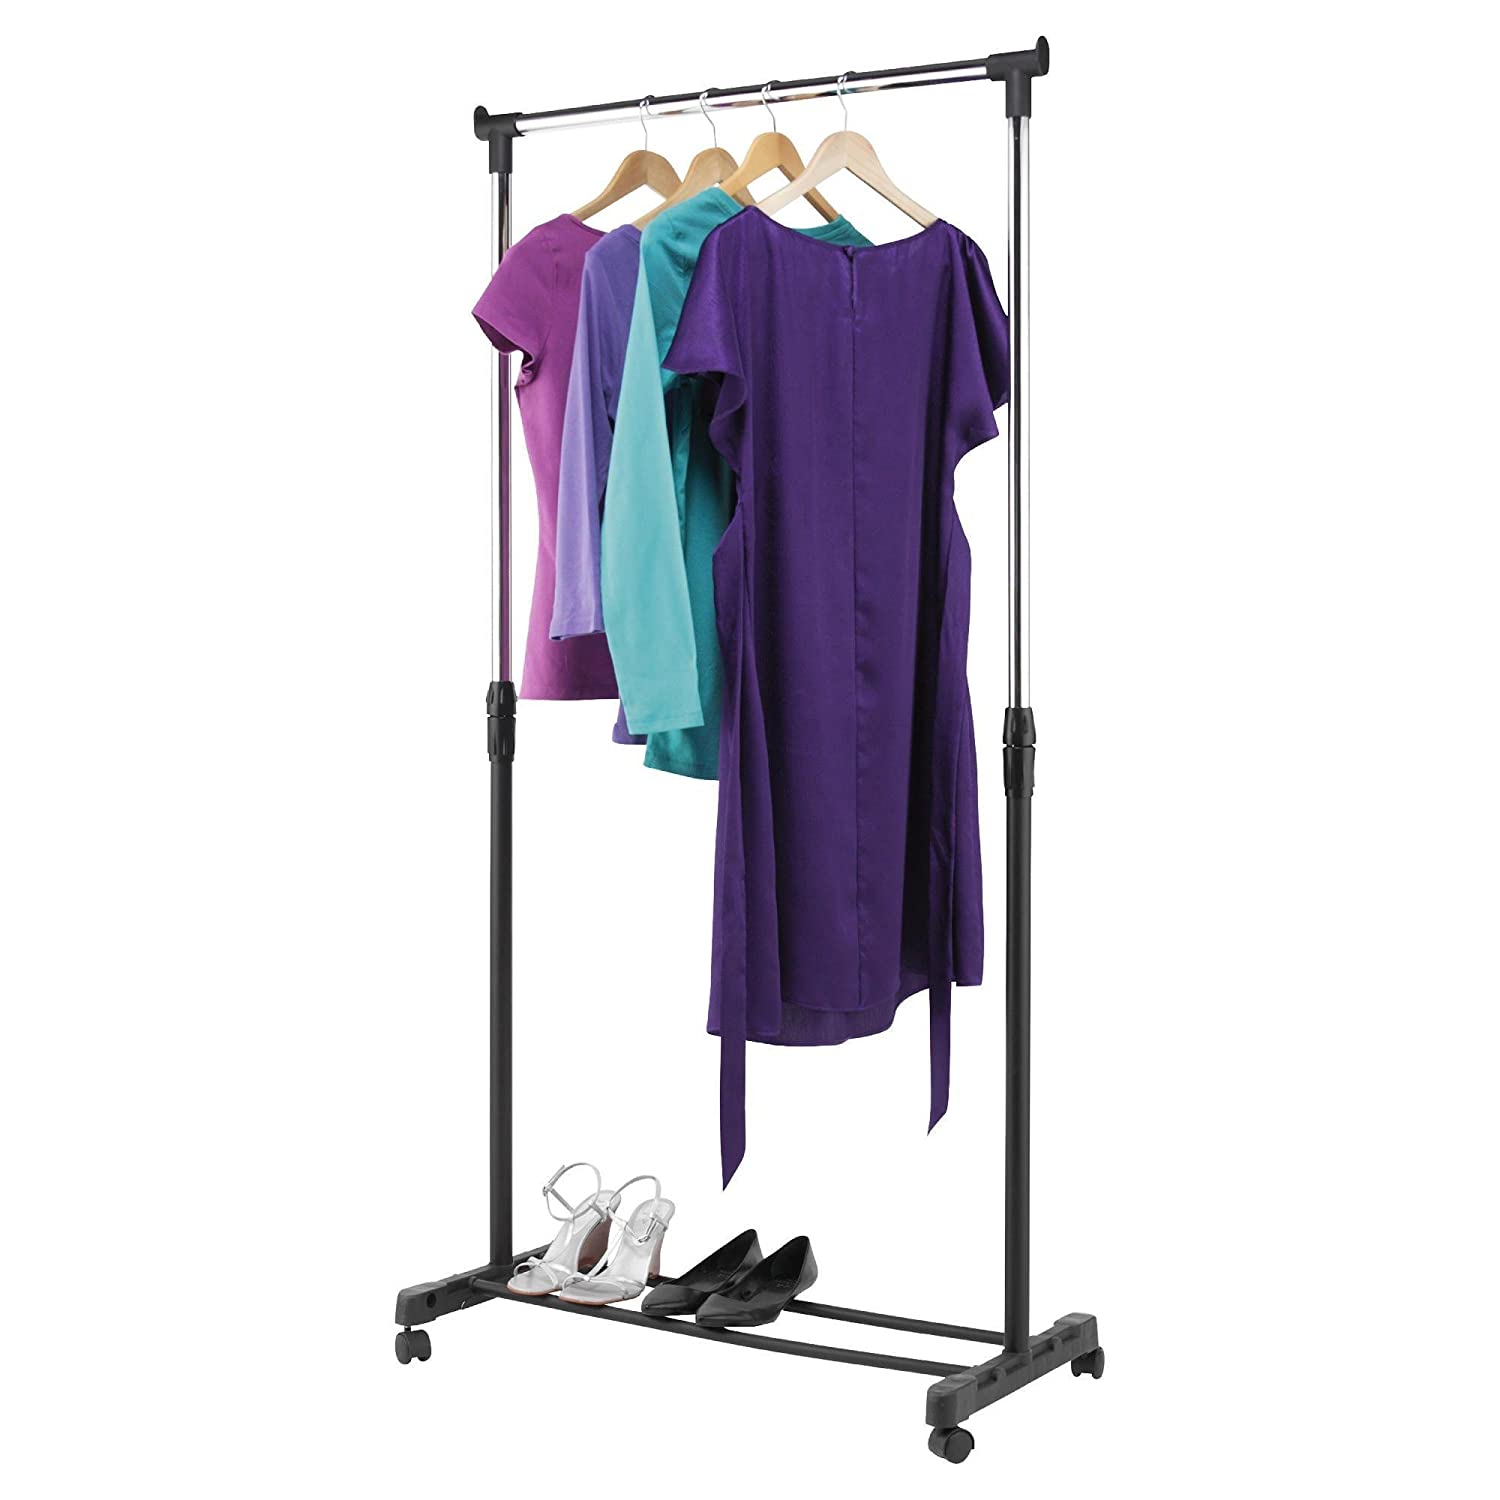 15KG S//STEEL HANGING RAIL ADJUSTABLE DOUBLE CLOTHES HANGING RAIL STAND BEDROOM